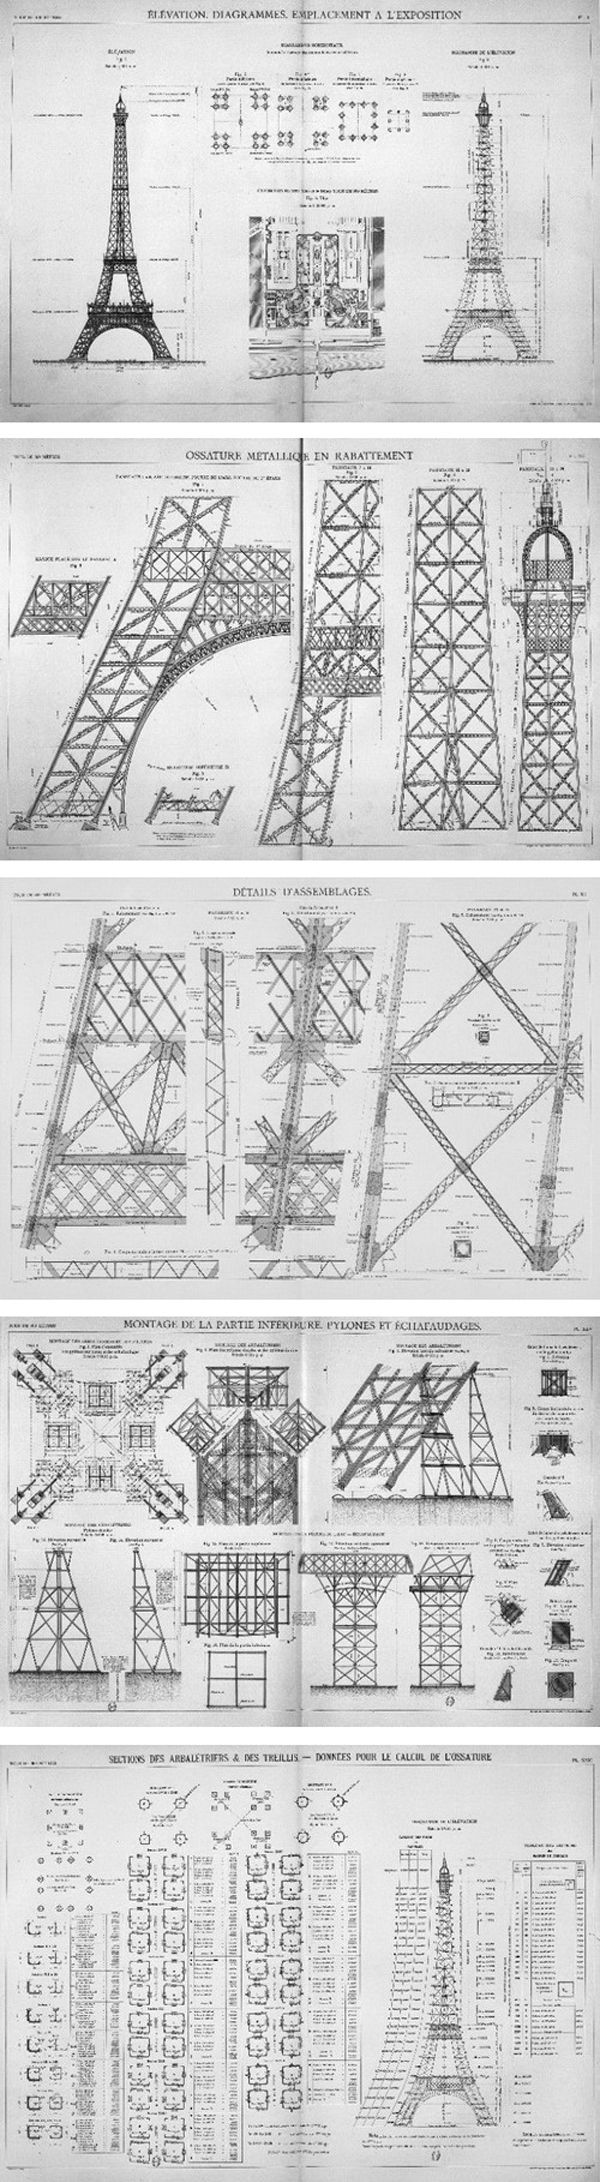 Blueprints for the eiffel tower named after the engineer gustave blueprints for the eiffel tower named after the engineer gustave eiffel whose company designed and built the tower erected in 1889 as the entrance arch malvernweather Choice Image